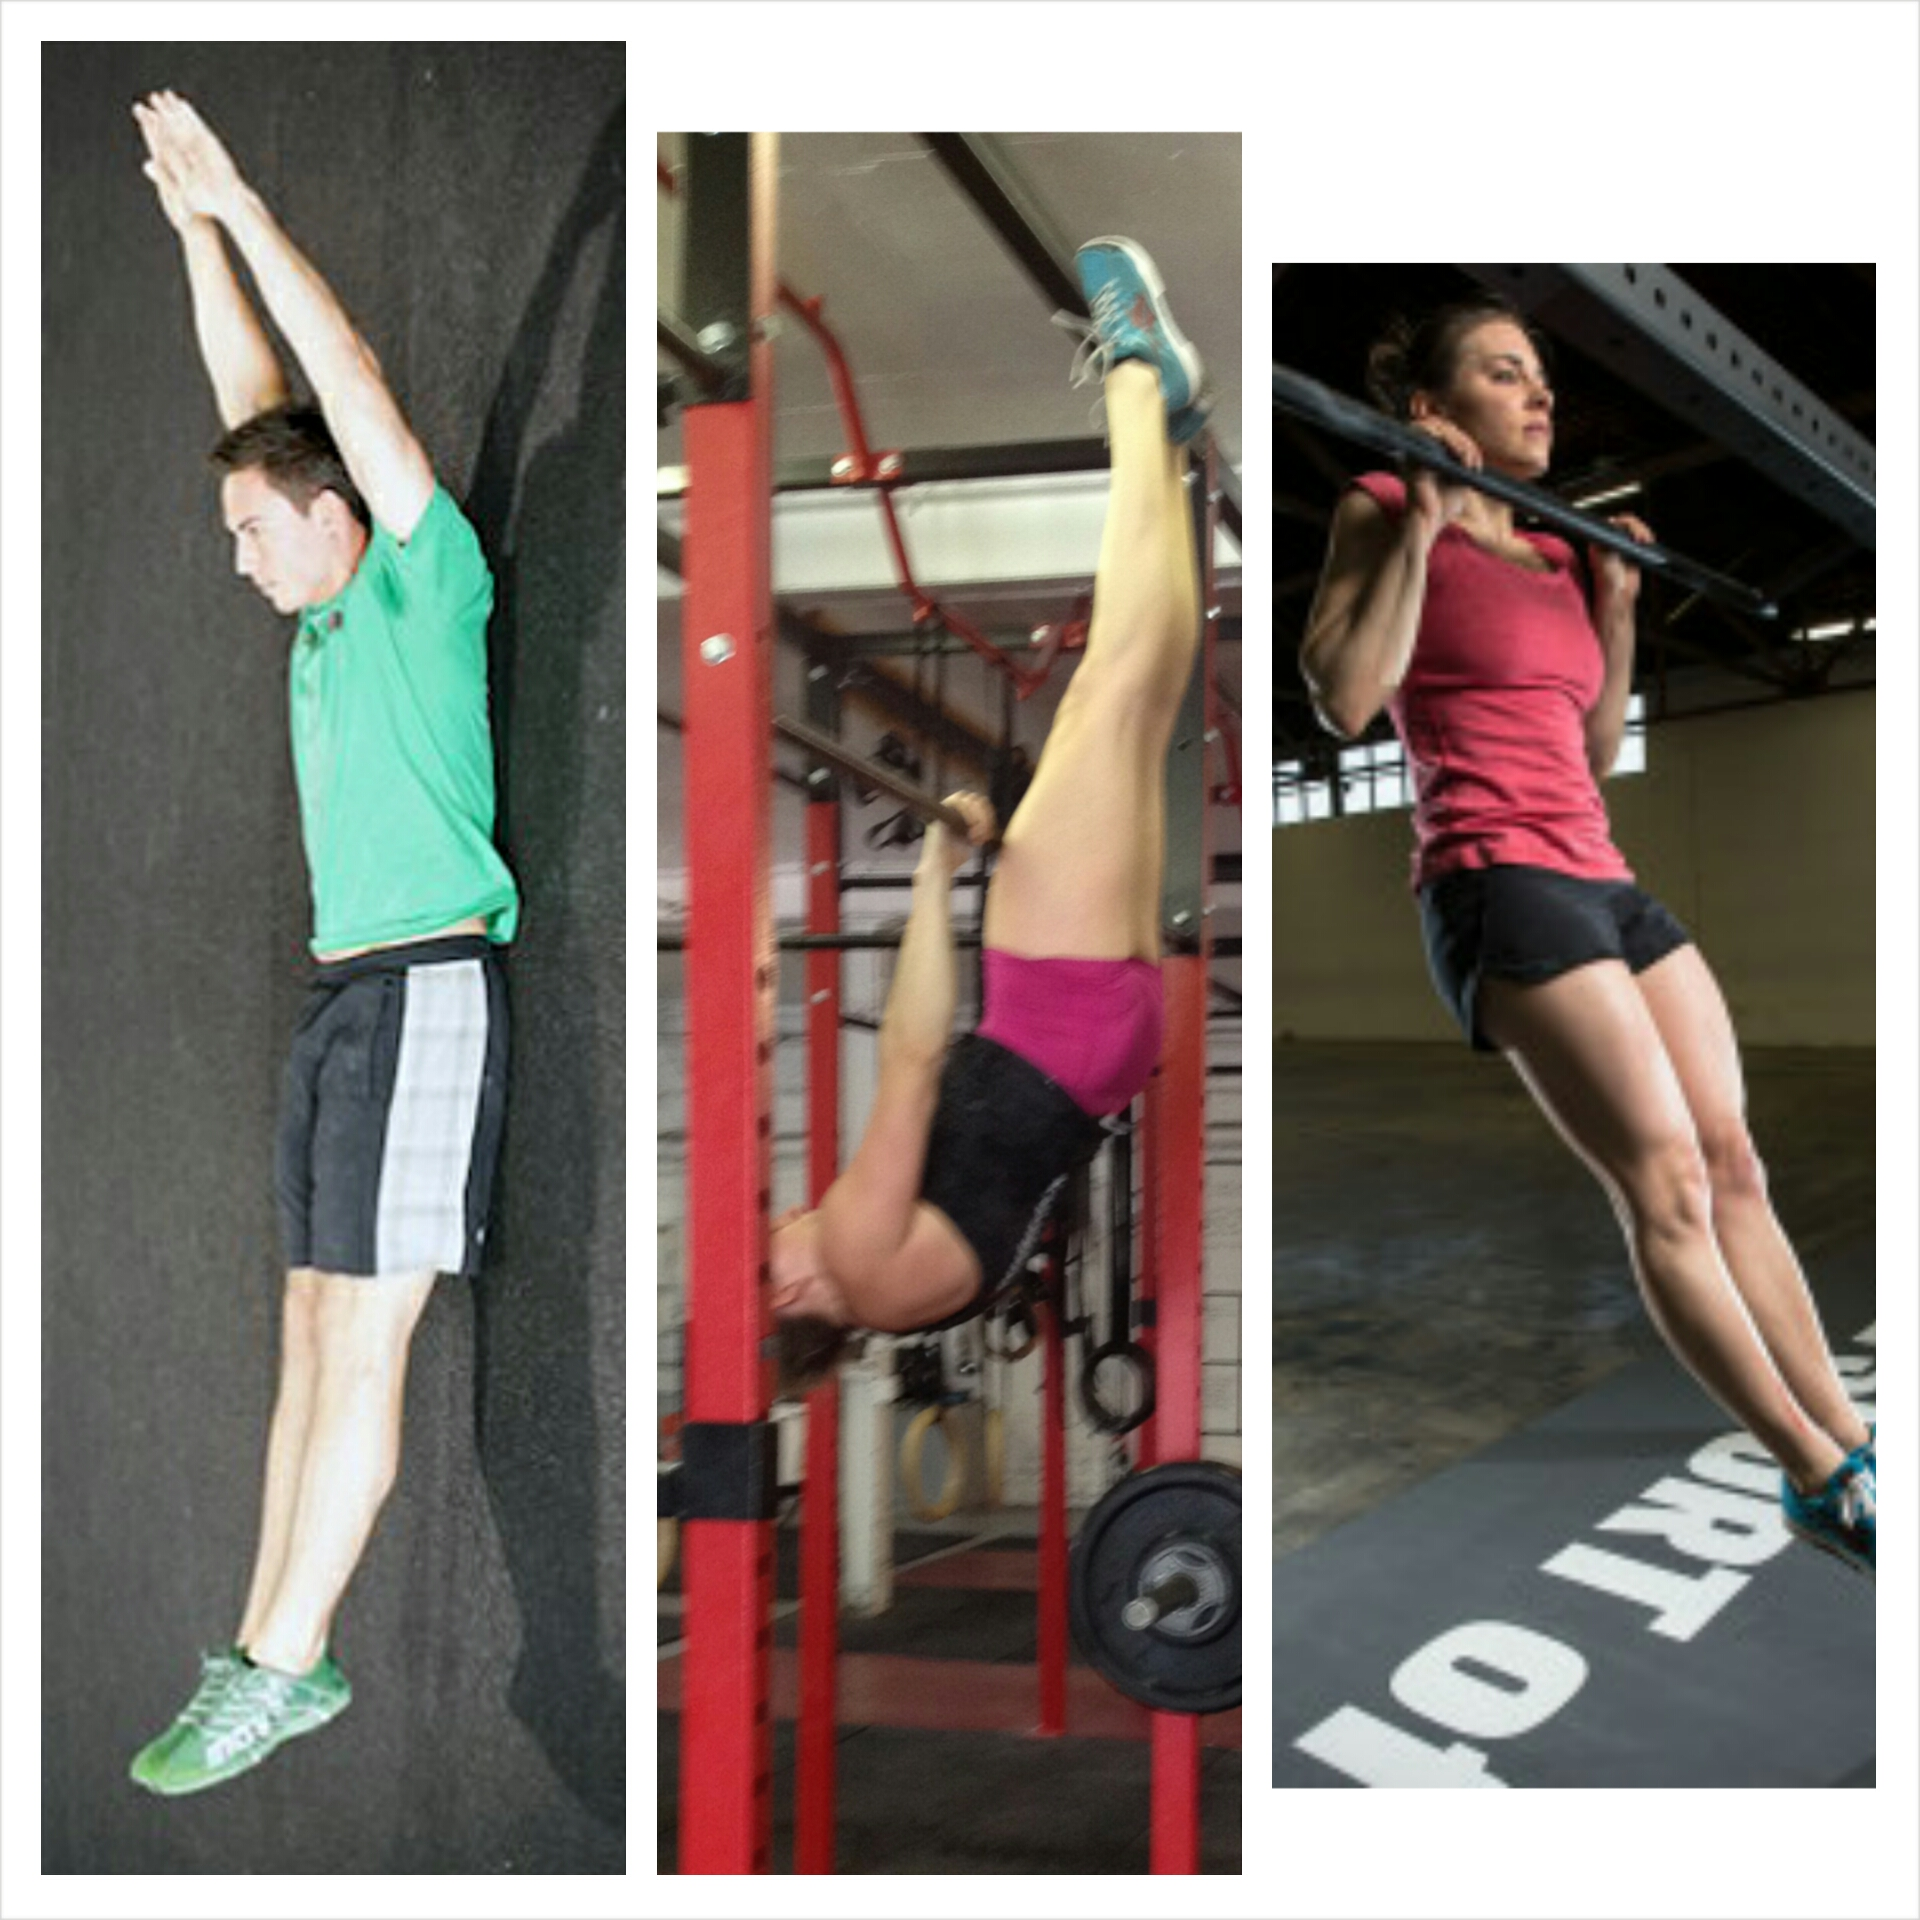 The hollow body position is very important to all gymnastic movements, weather its on the floor or on the pull up rig. The rigidness through the mid section is key to be successful at even the most basic movements.